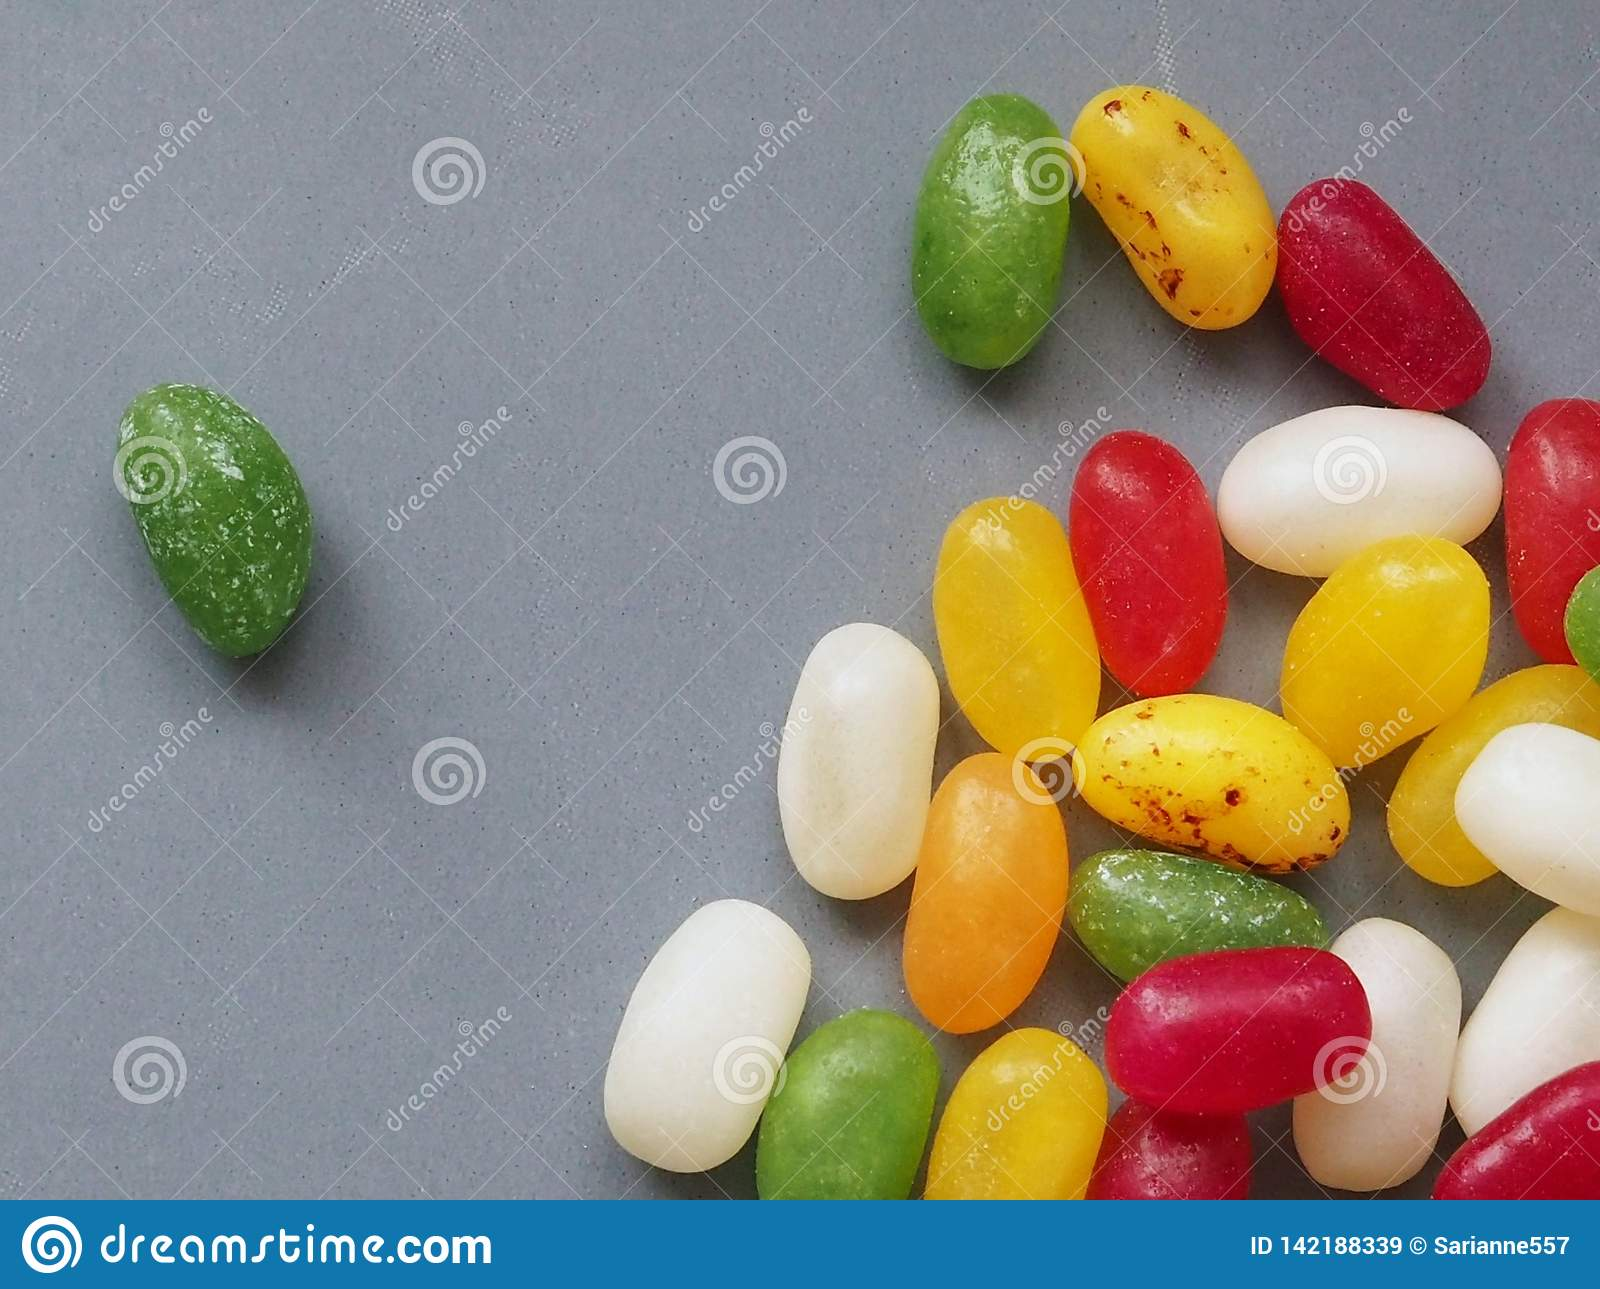 Jellybean sweets on grey background